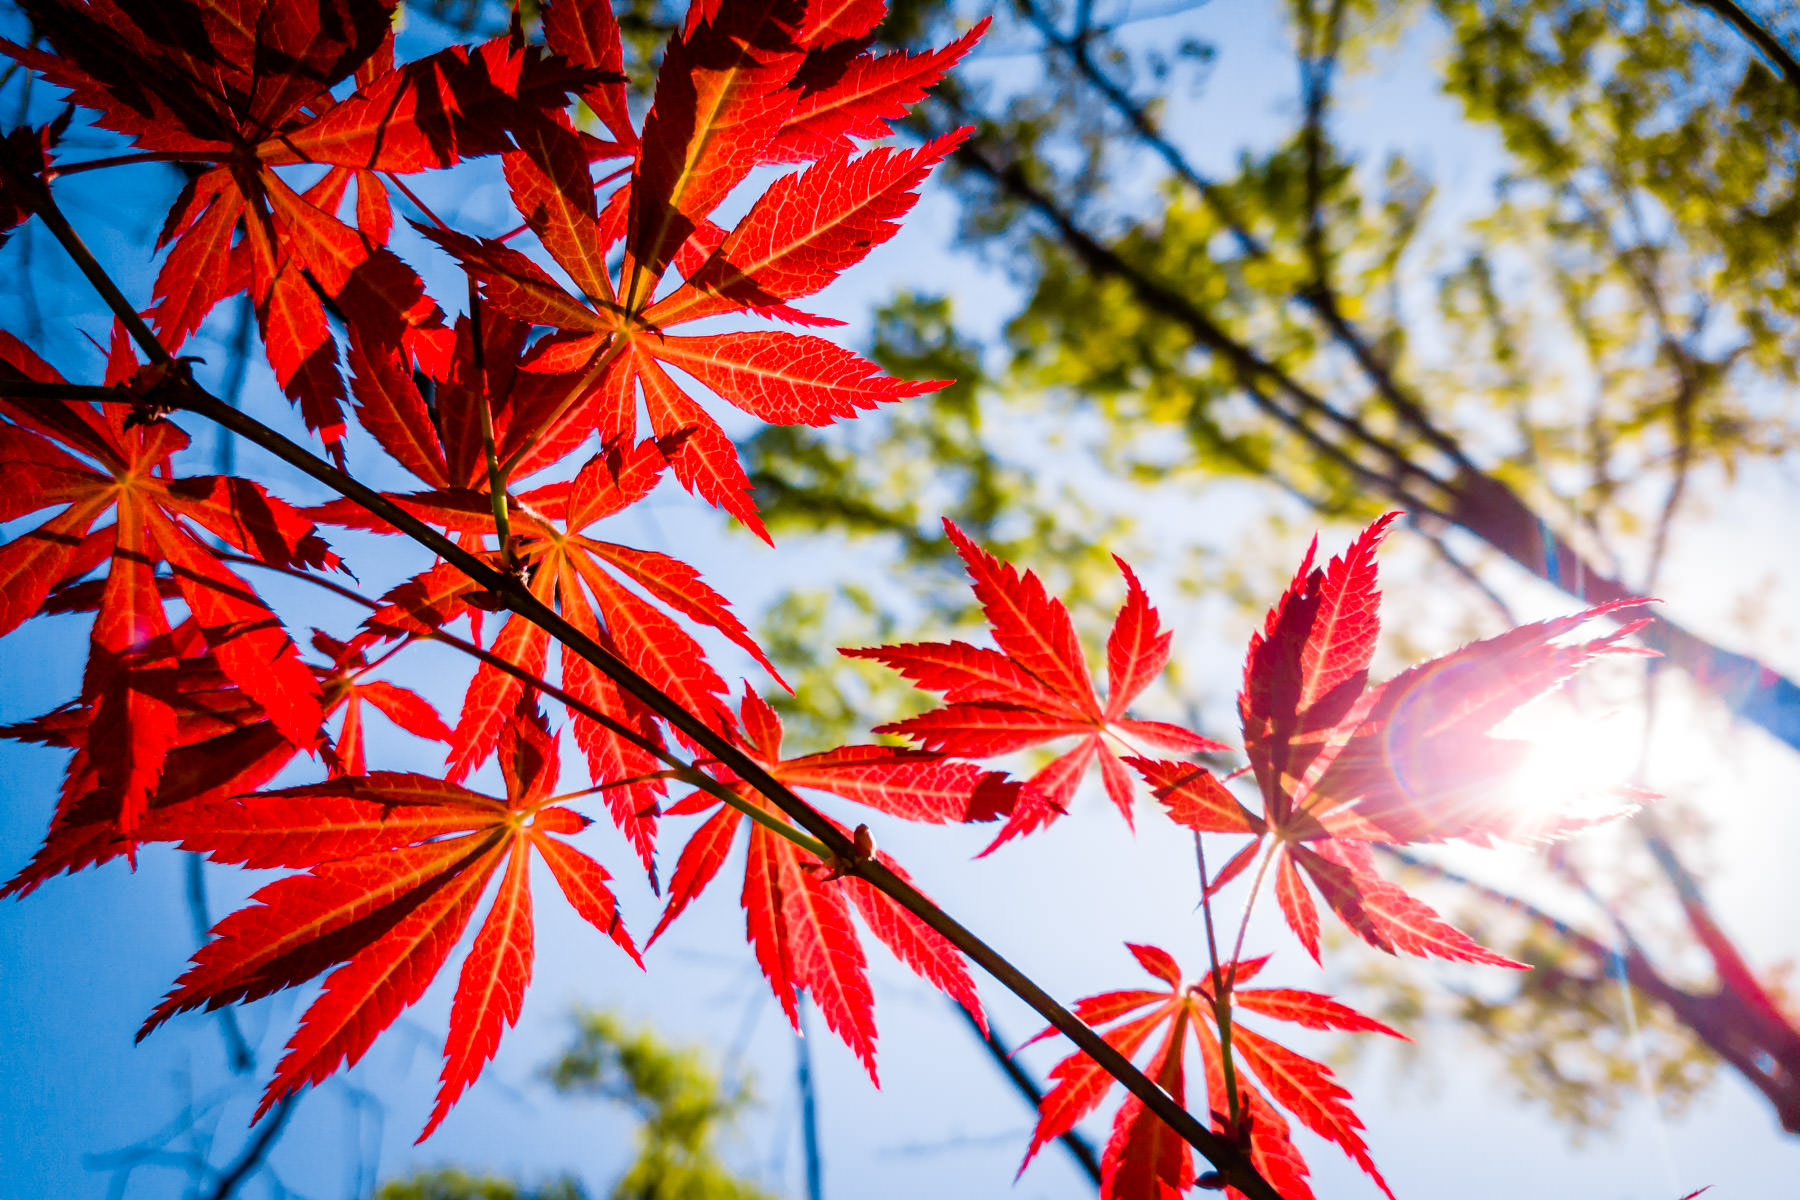 The sun shines through the branches of a tree, illuminating the leaves of a Japanese Maple tree in Tyler, Texas.